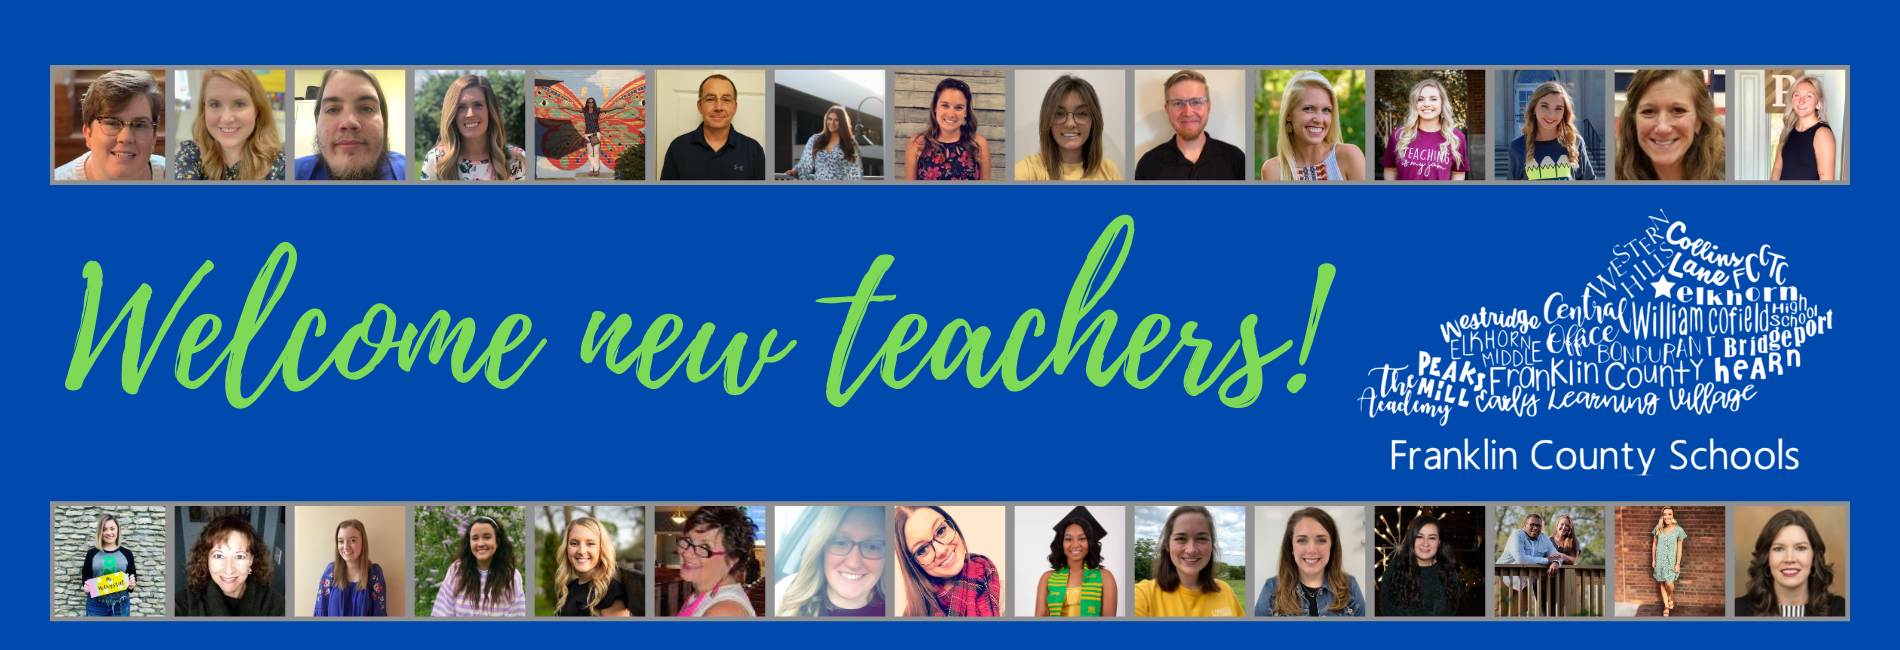 We would like to welcome all of our new teachers to our FCS team! #OneTeamFCS